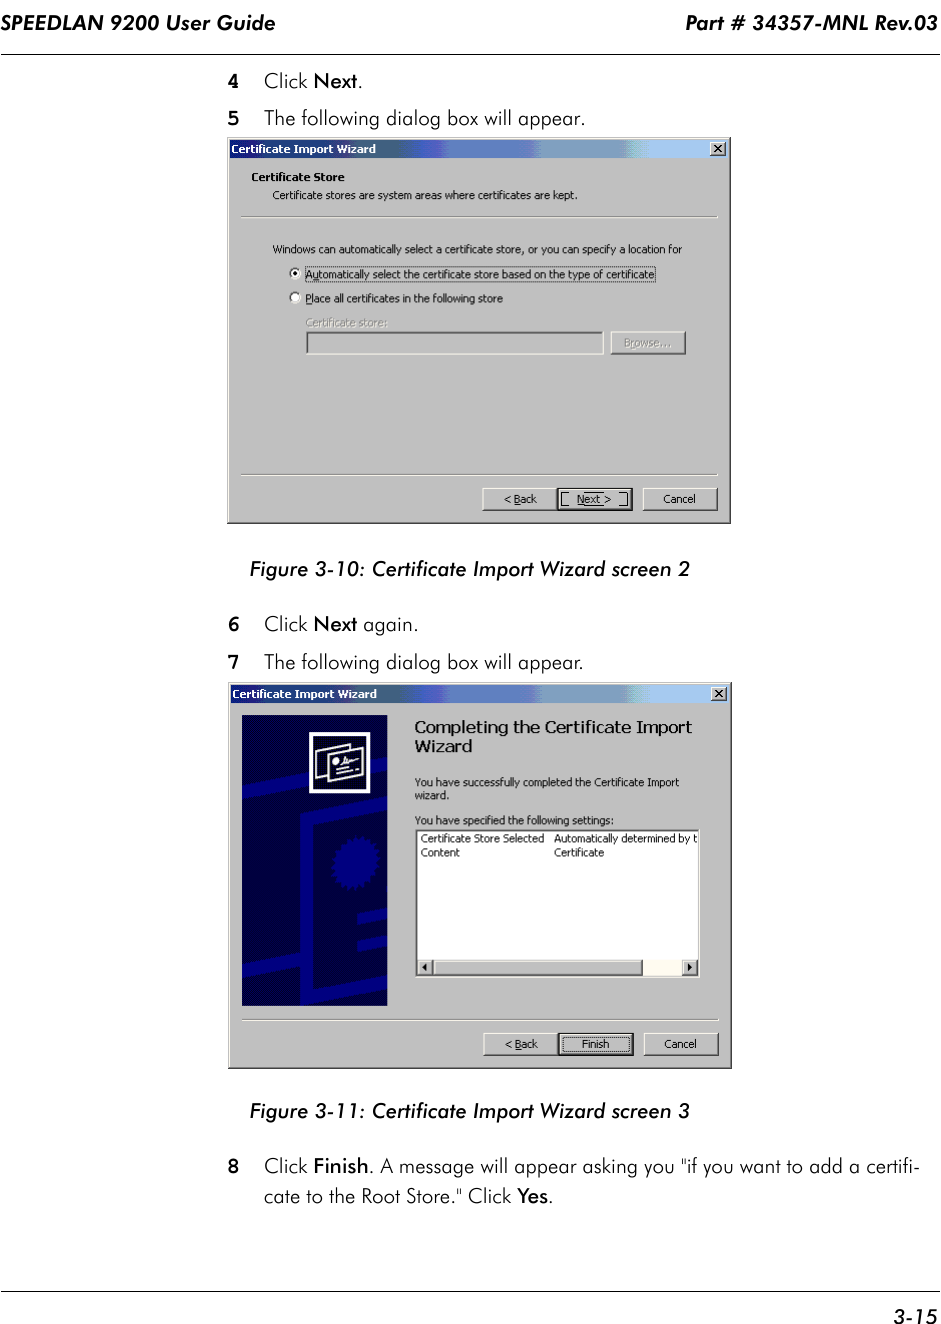 """SPEEDLAN 9200 User Guide                                                                    Part # 34357-MNL Rev.03      3-15                                                                                                                                                              4   Click Next.5The following dialog box will appear.Figure 3-10: Certificate Import Wizard screen 26Click Next again.7The following dialog box will appear.Figure 3-11: Certificate Import Wizard screen 38Click Finish. A message will appear asking you """"if you want to add a certifi-cate to the Root Store."""" Click Ye s."""